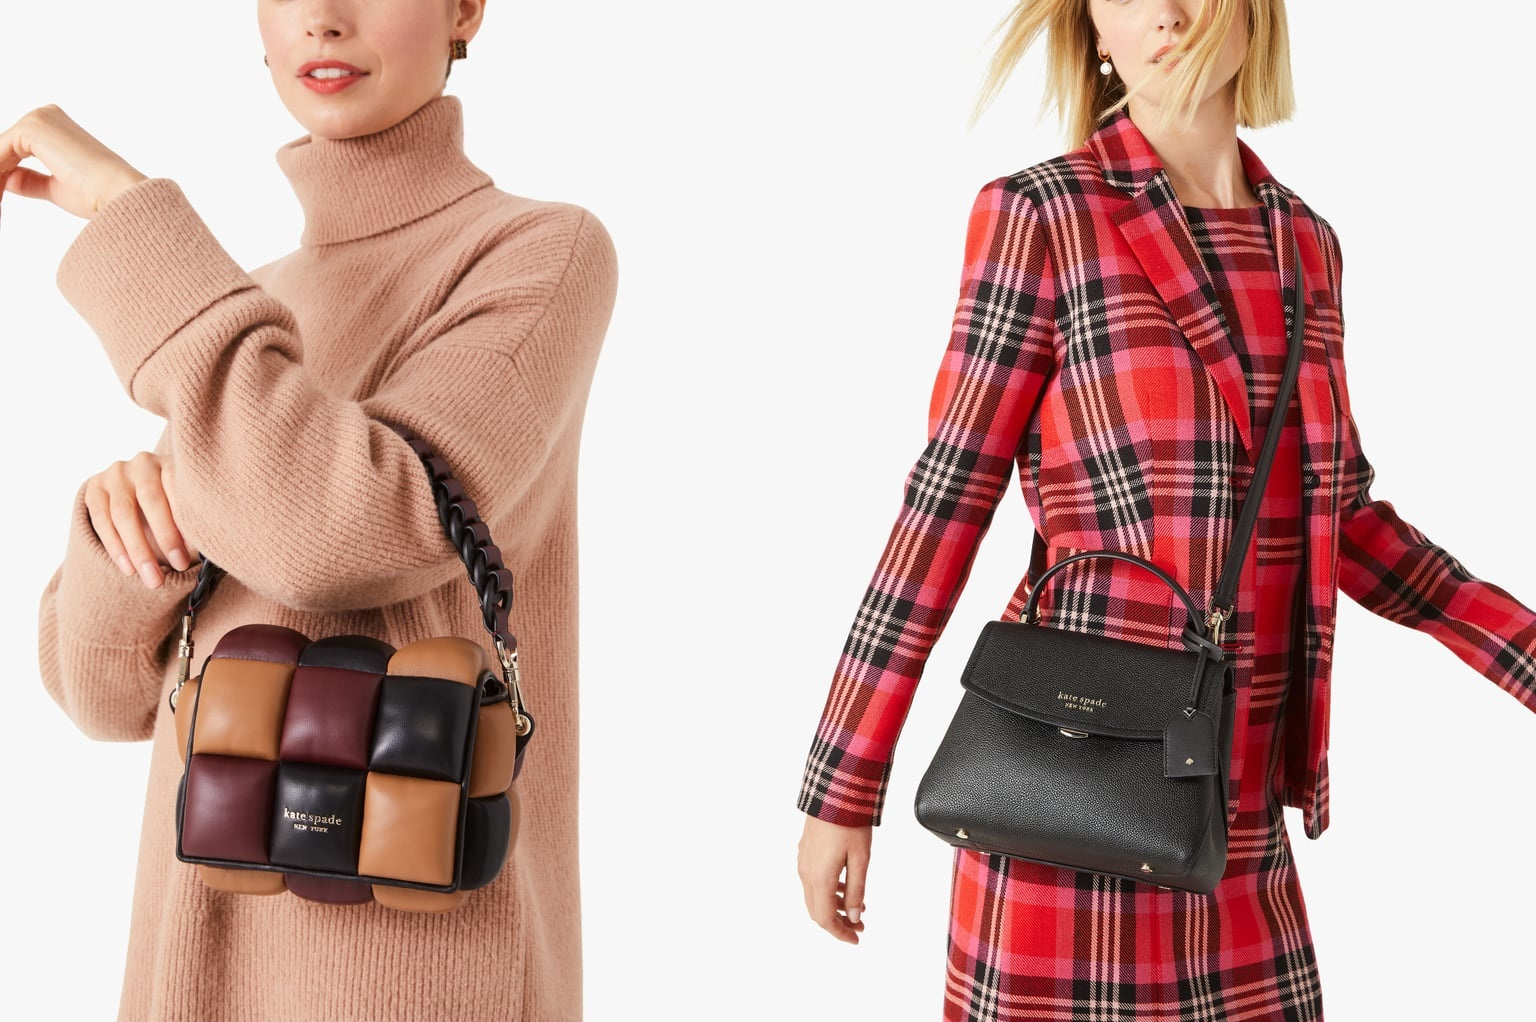 Kate Spade NY Just Released a Gorgeous New Fall Collection